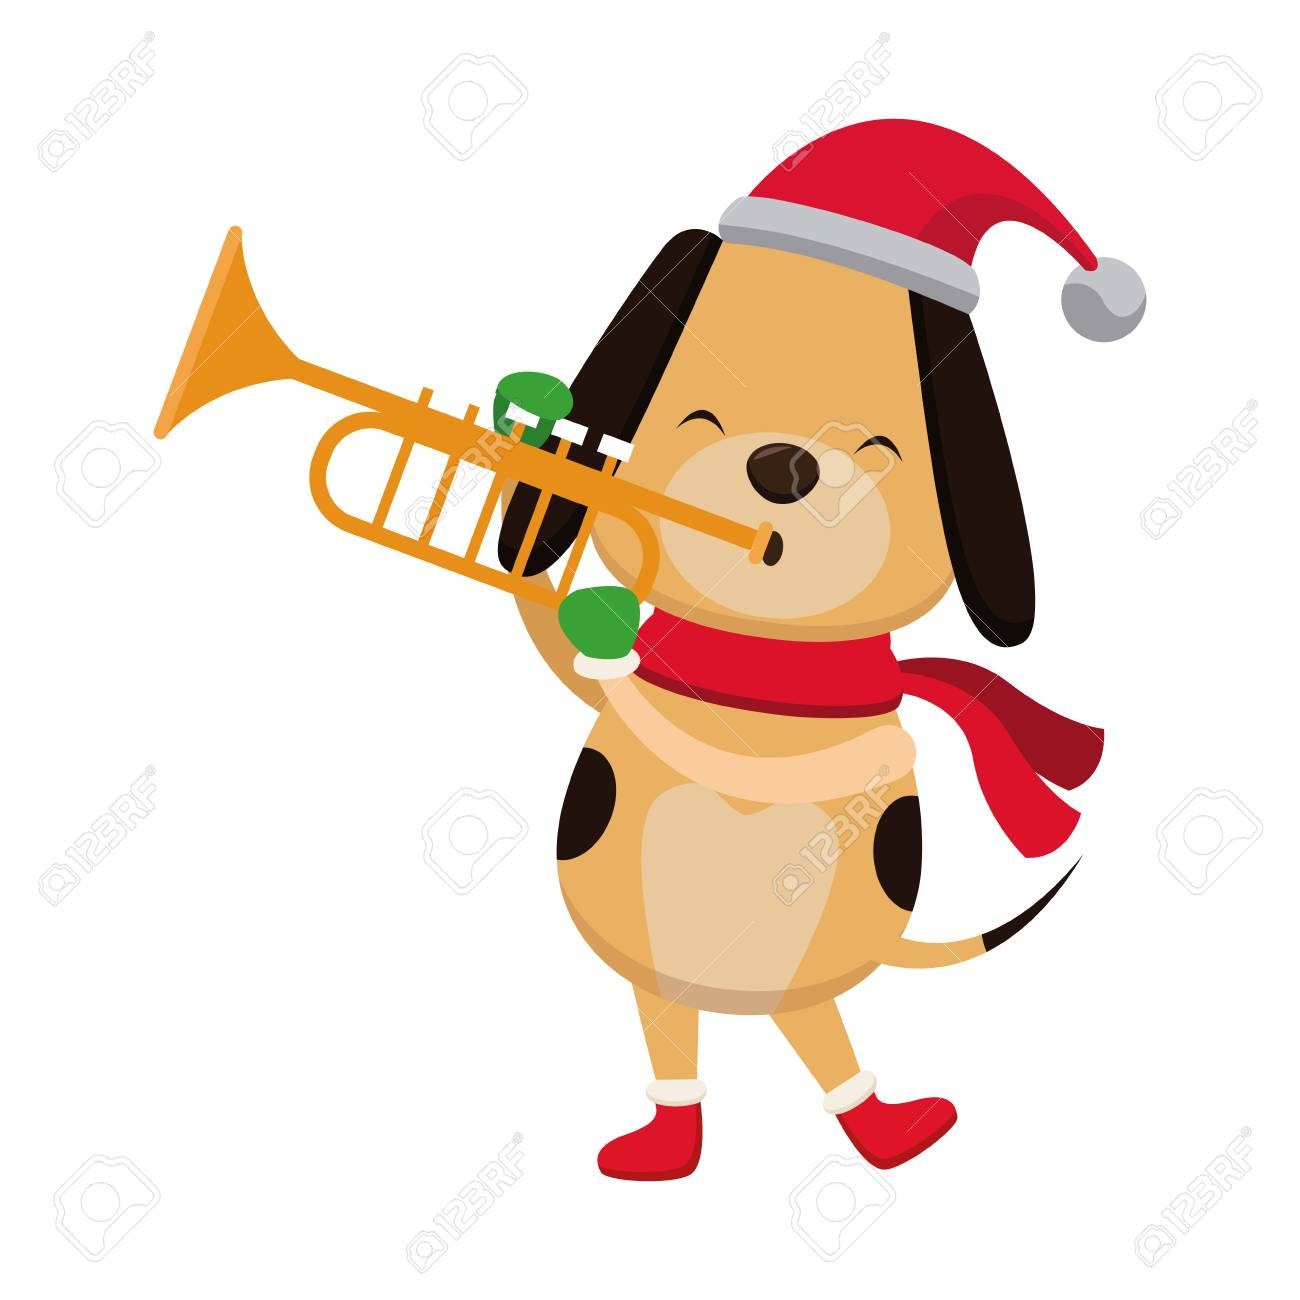 Christmas Trumpet Images.Christmas Dog With Trumpet Cartoon Icon Vector Illustration Graphic